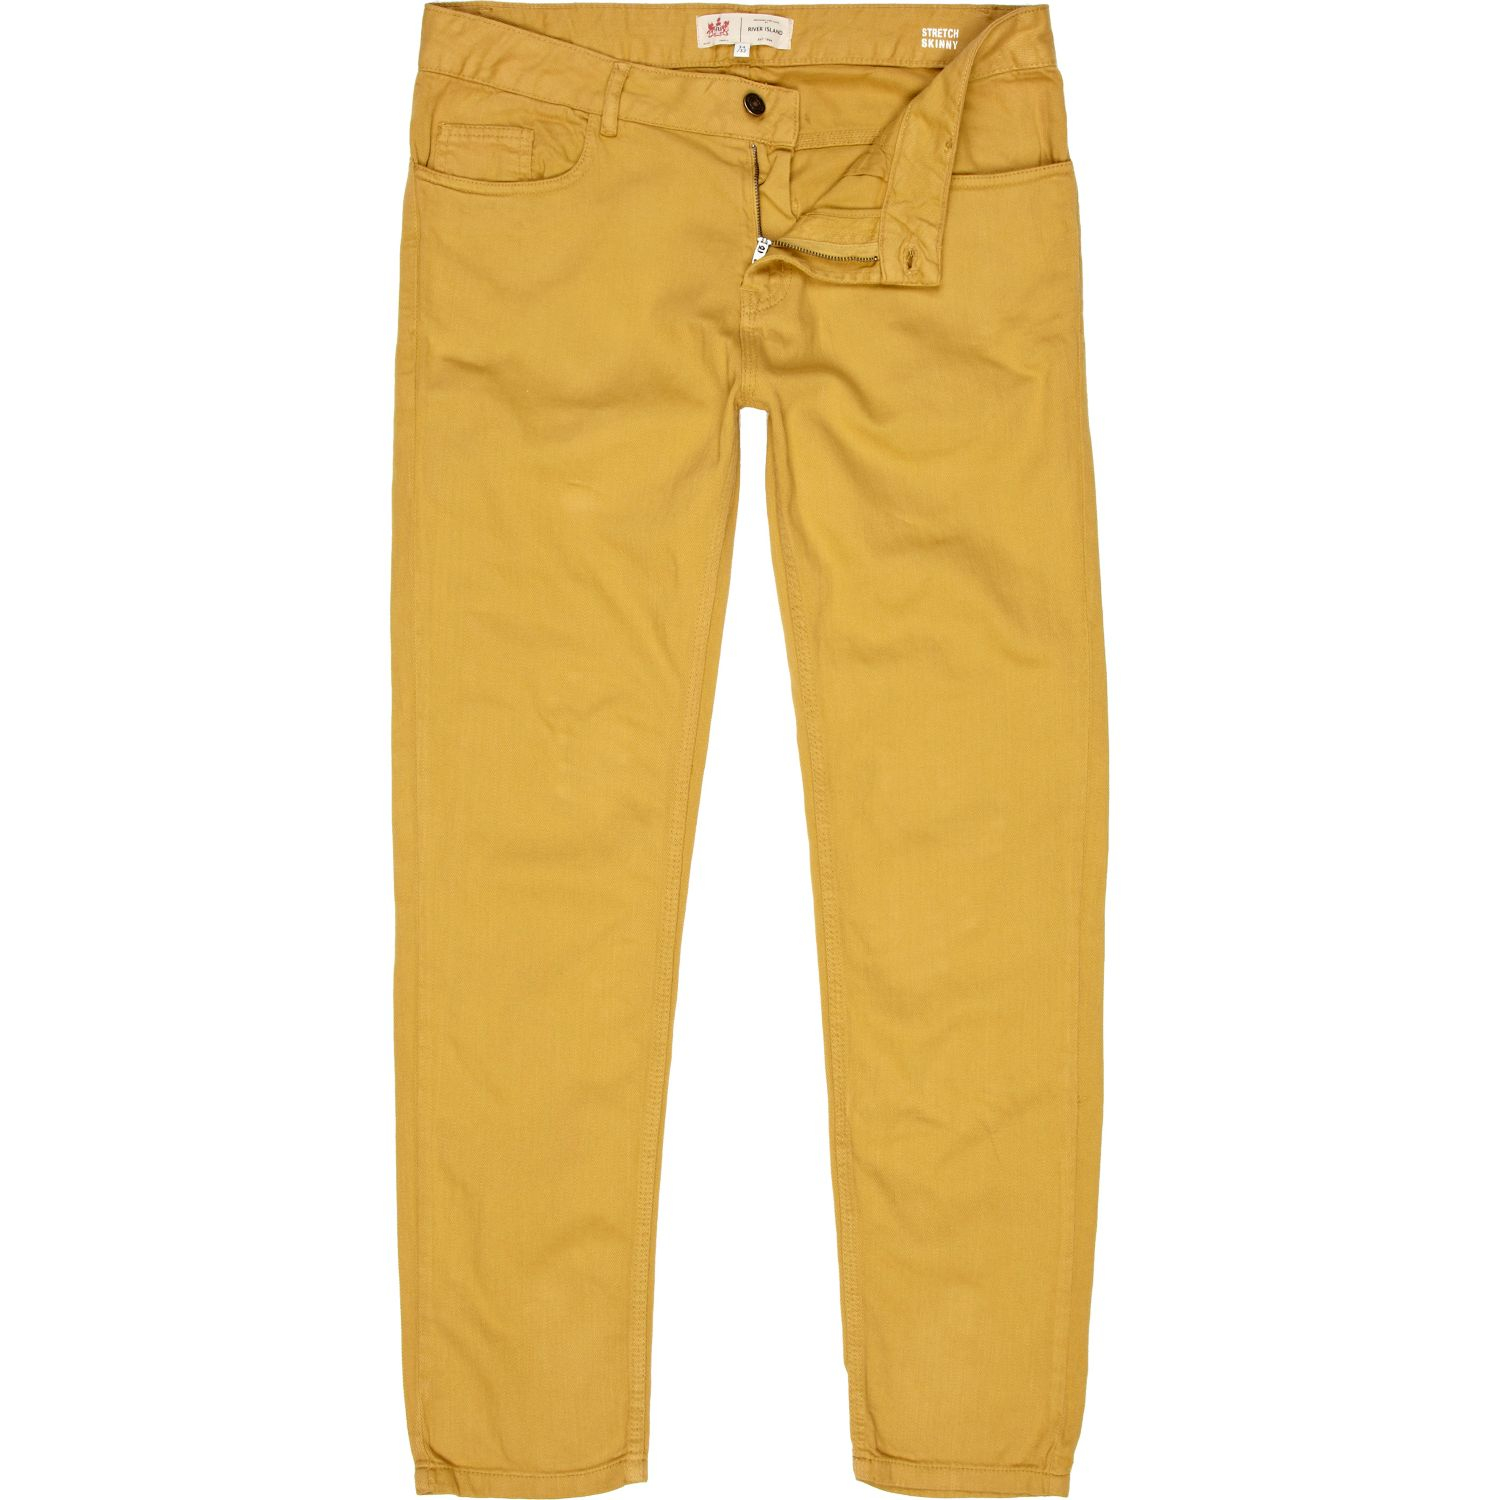 Unique Mustard Colored Womens Pants With Luxury Example U2013 Playzoa.com